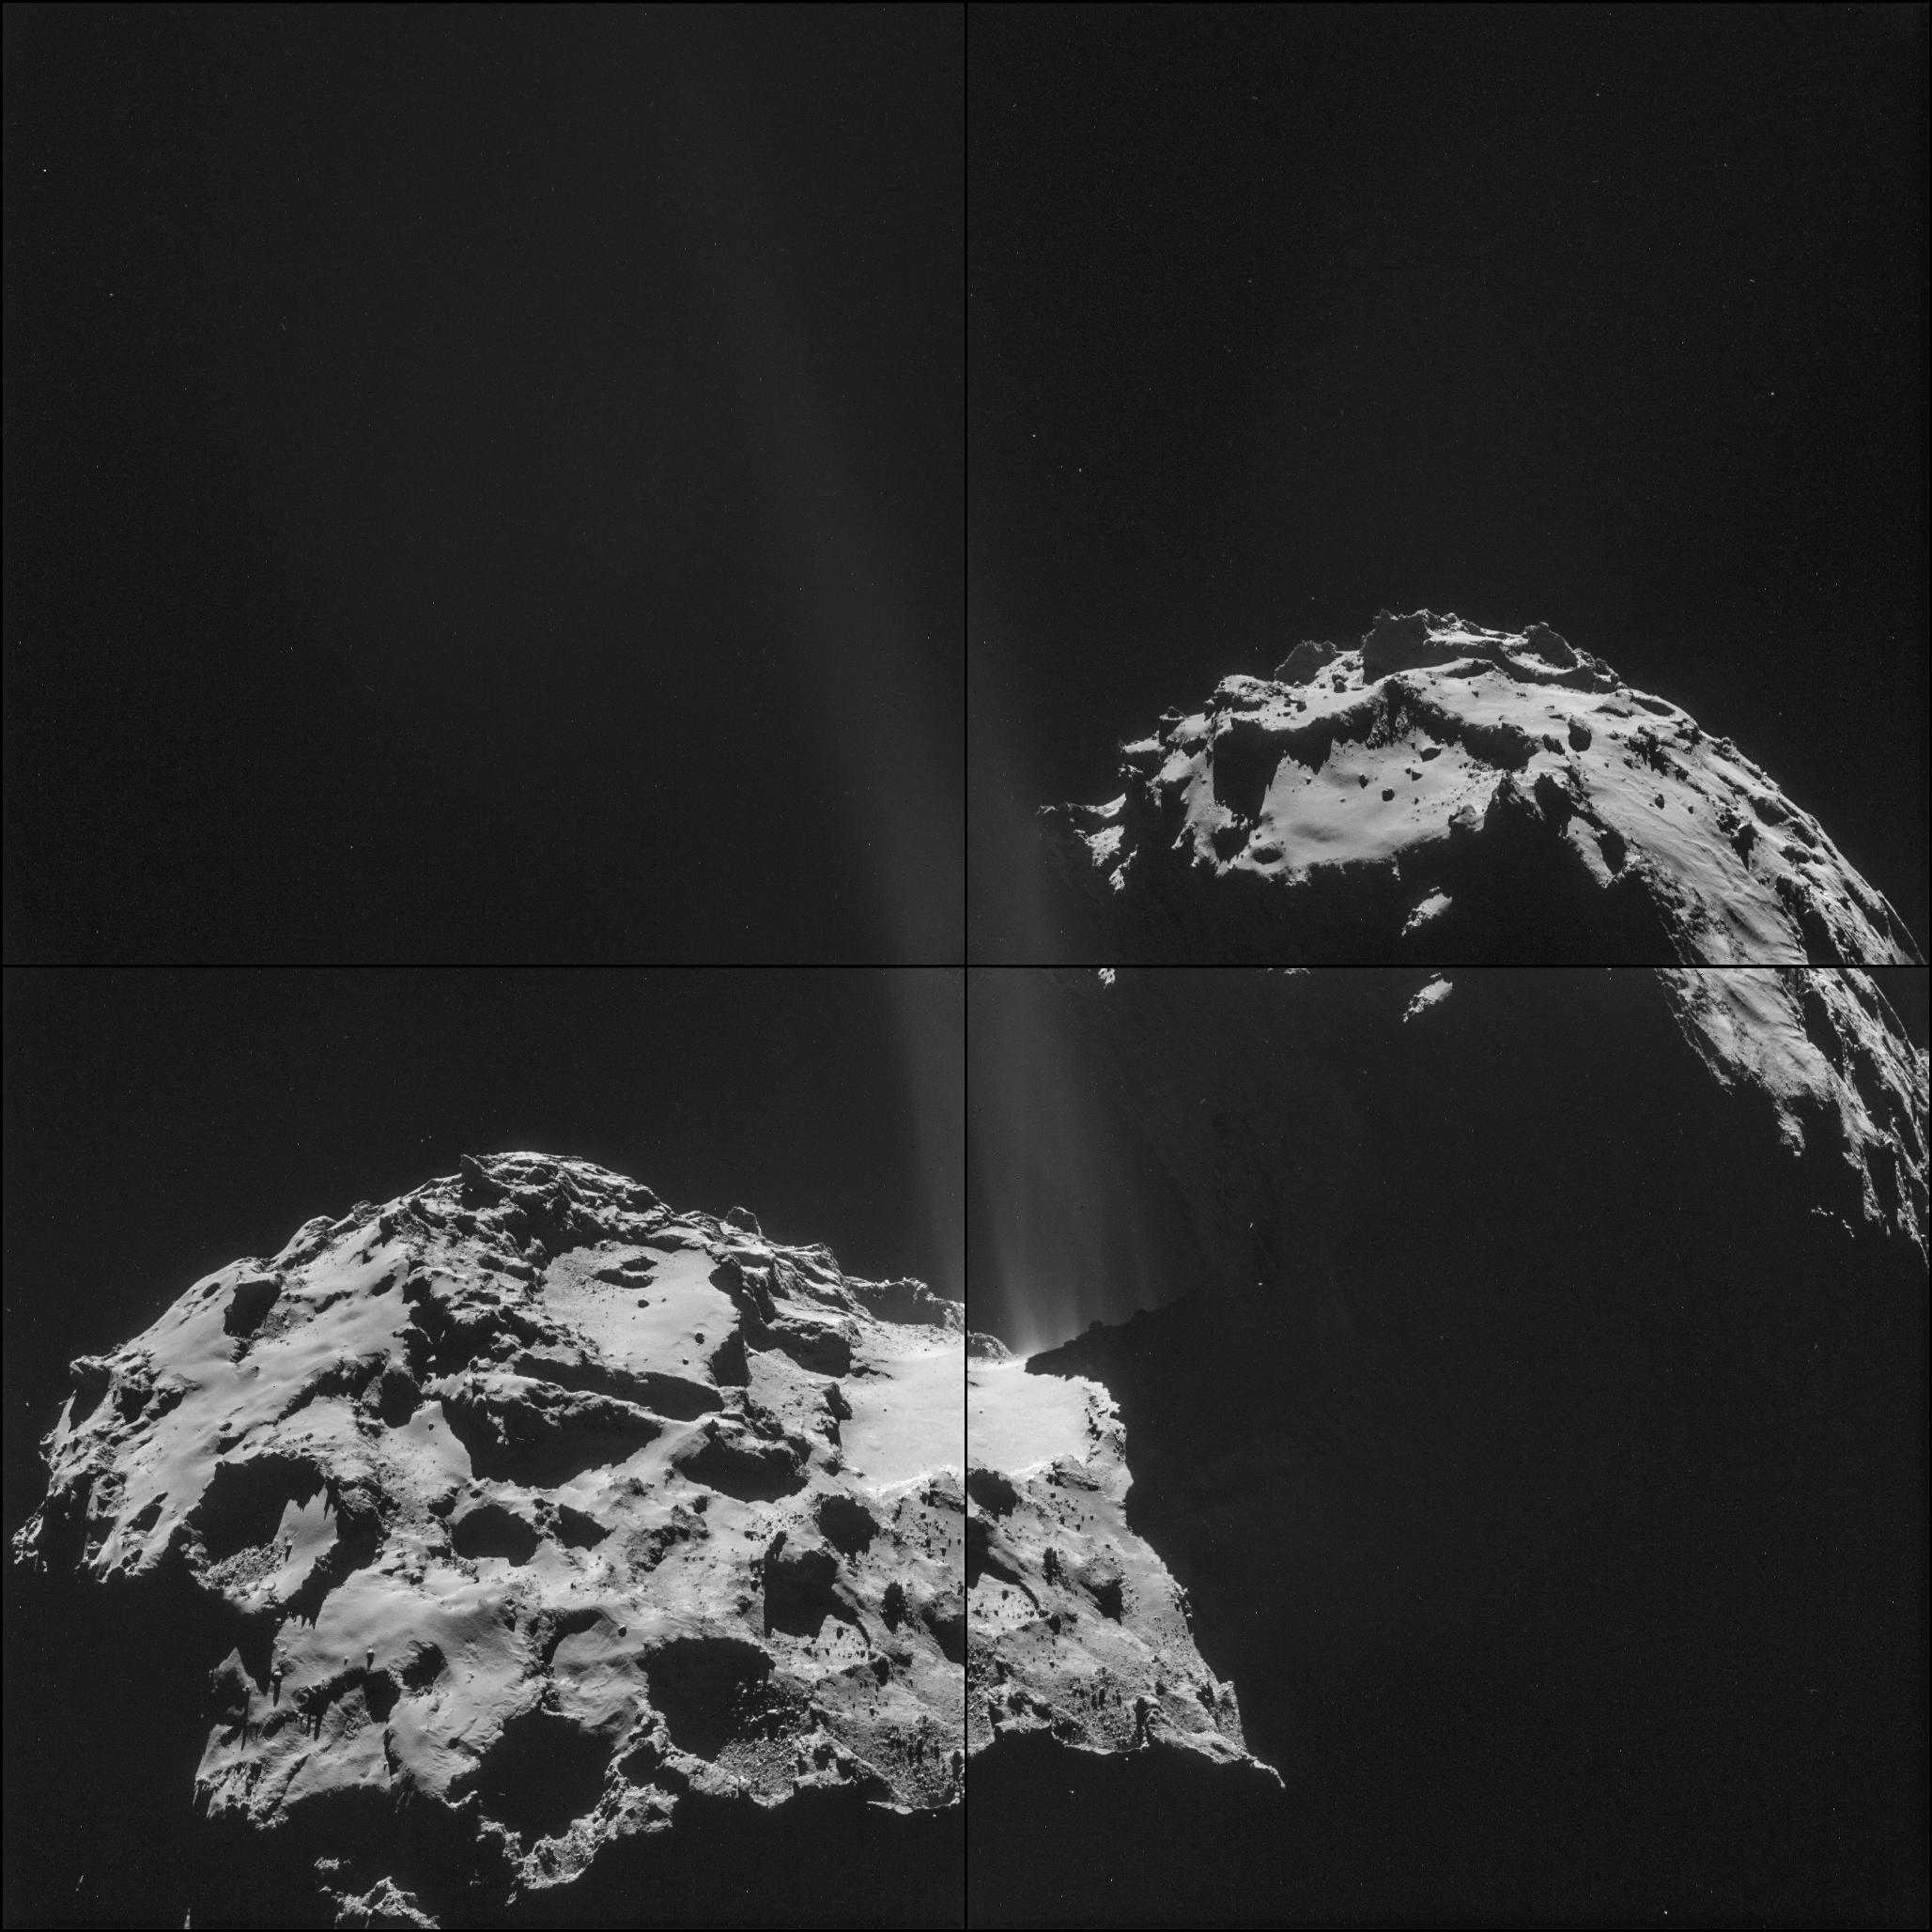 Comet Emits Cosmic Stench, Rosetta Spacecraft Reveals